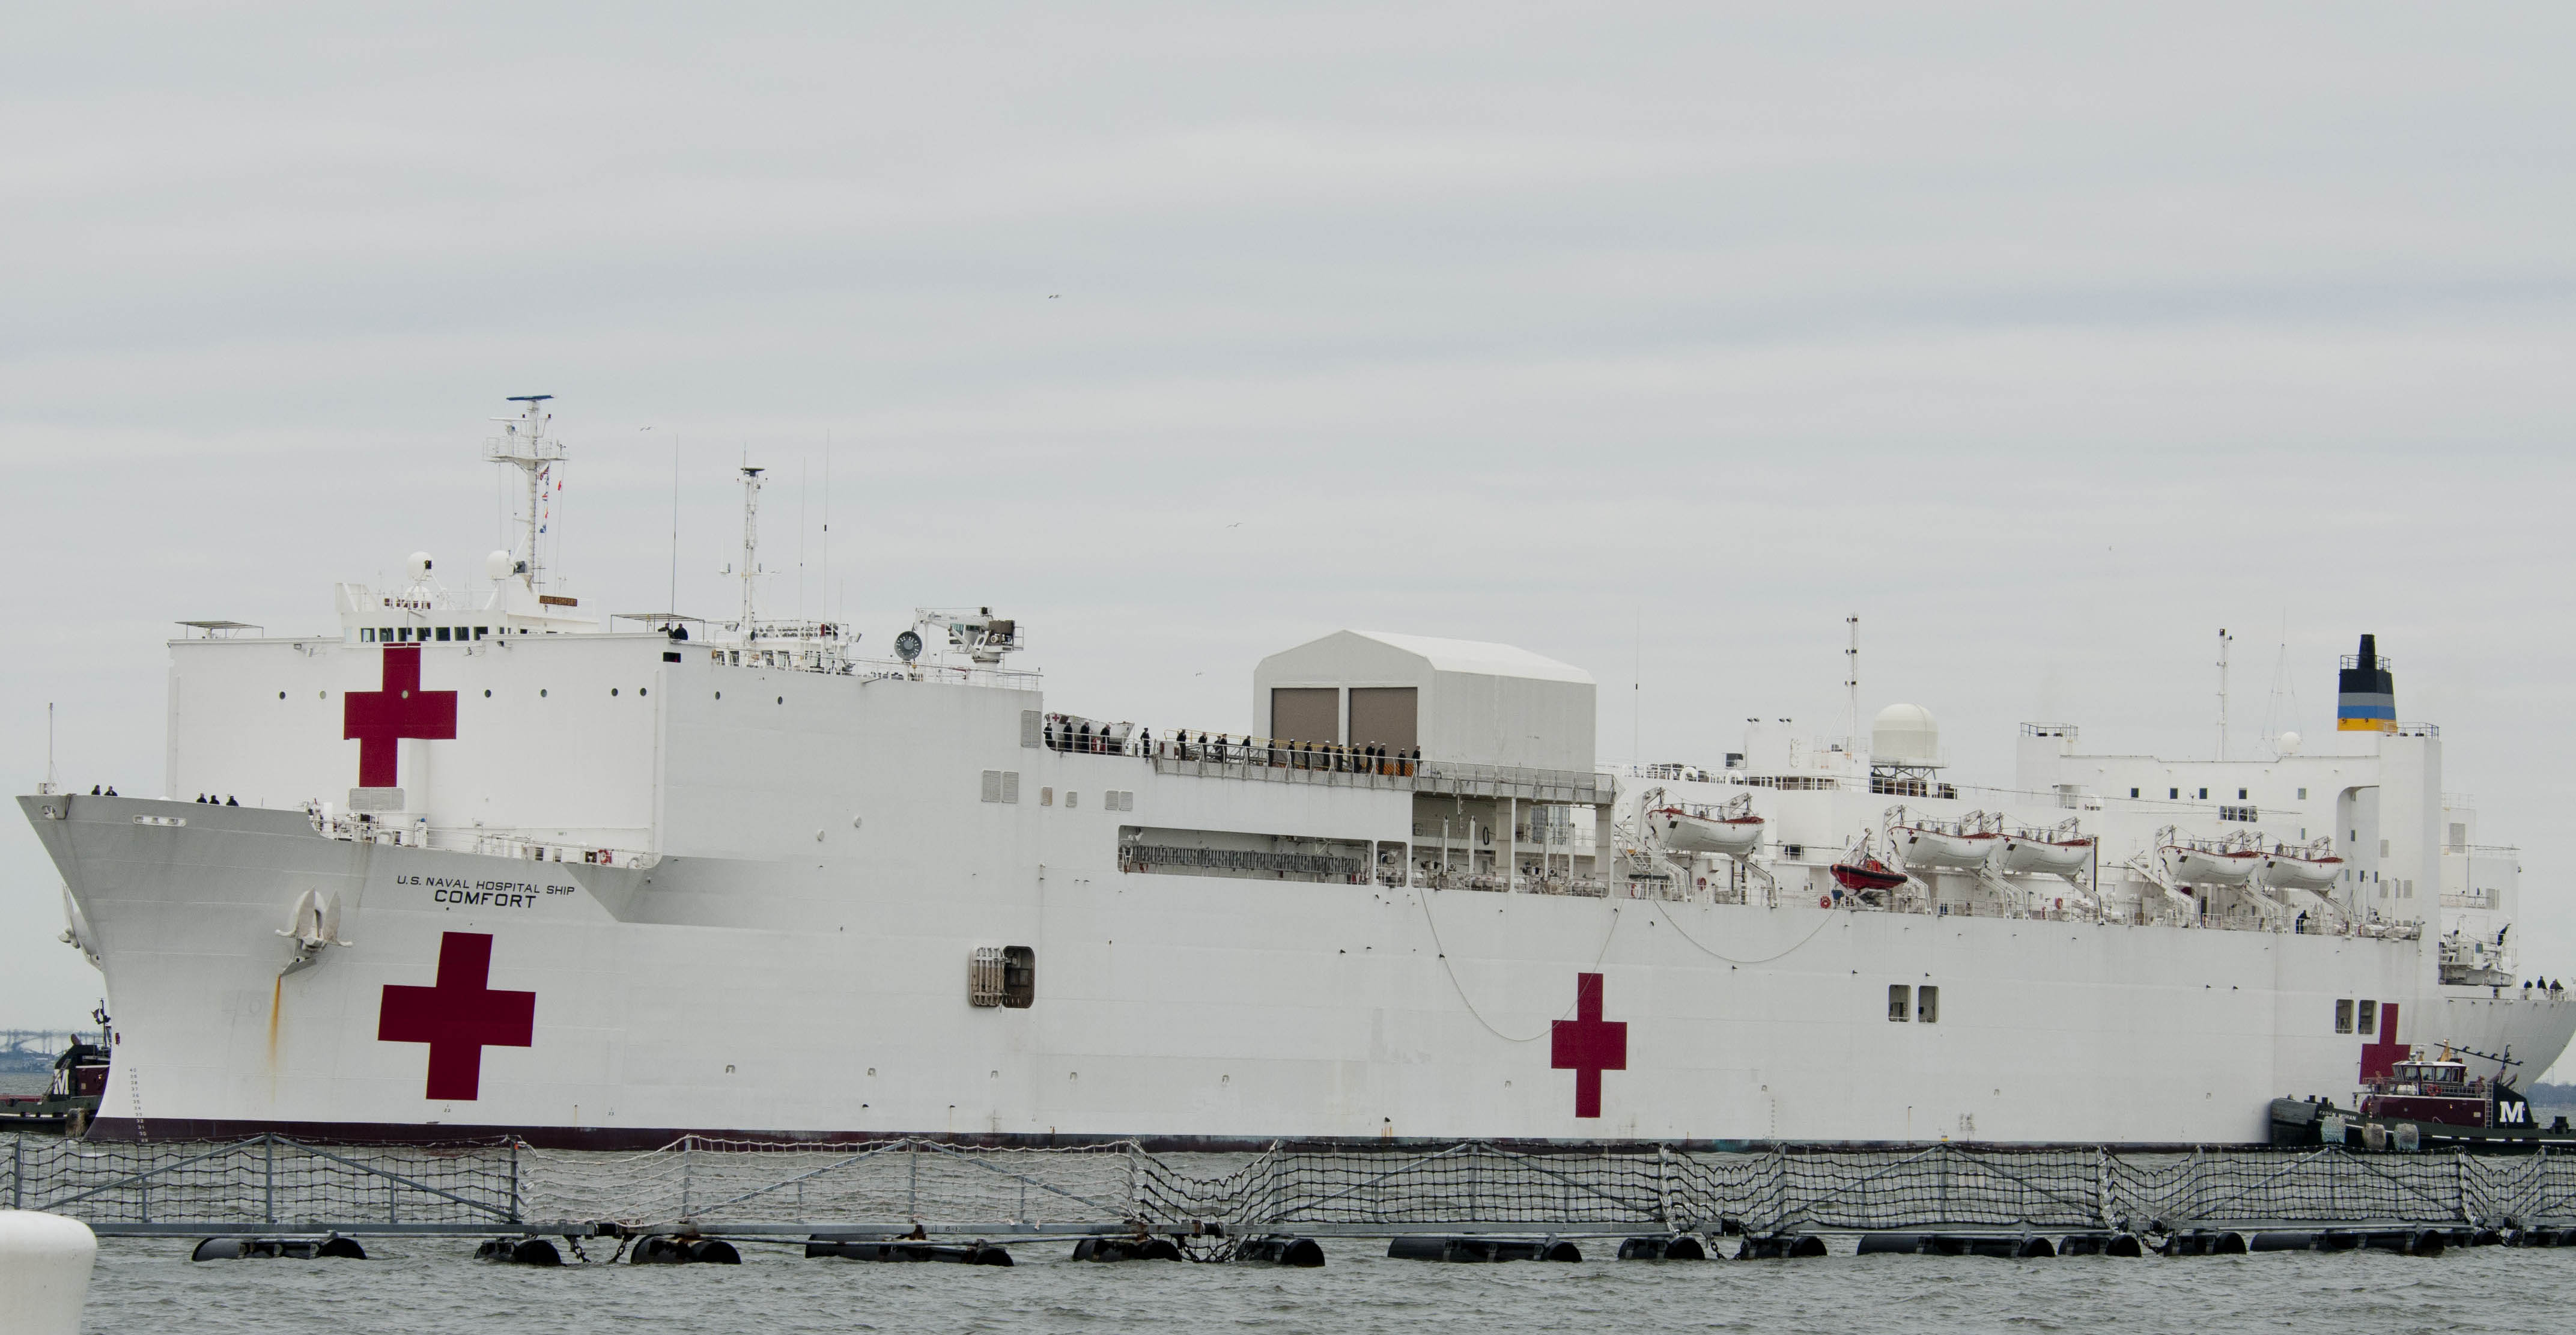 USNS Comfort (T-AH-20), one of the Navy's two hospital ships that will be counted in the service's 'battle force' as part of a new plan that reclassifies existing ships by assets in high demand by combatant commanders. US Navy Photo